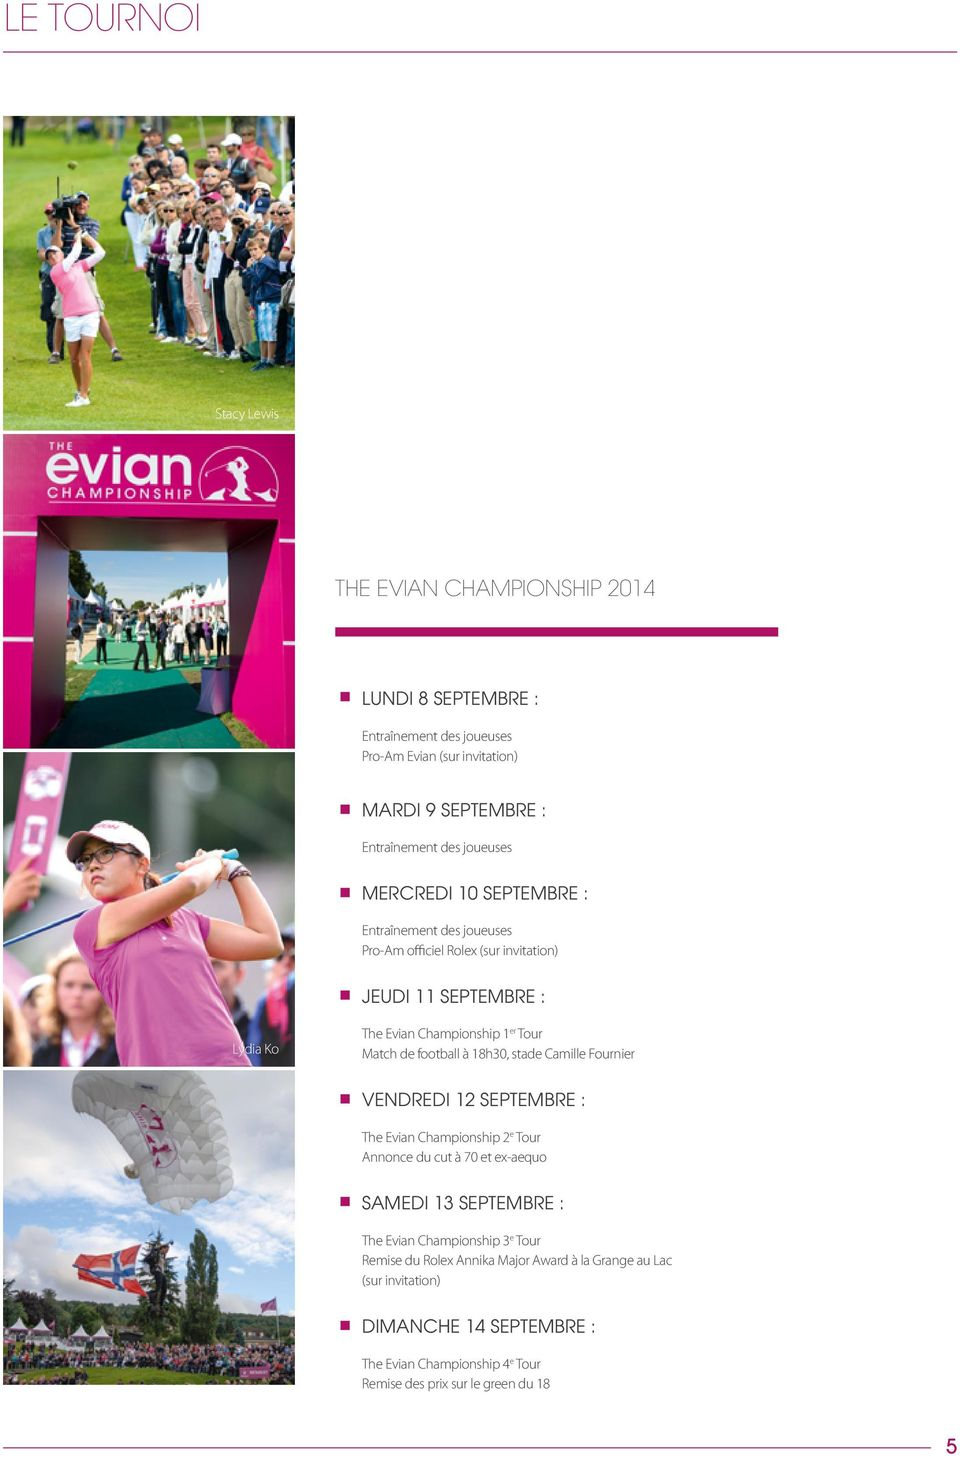 football à 18h30, stade Camille Fournier VENDREDI 12 SEPTEMBRE : The Evian Championship 2 e Tour Annonce du cut à 70 et ex-aequo SAMEDI 13 SEPTEMBRE : The Evian